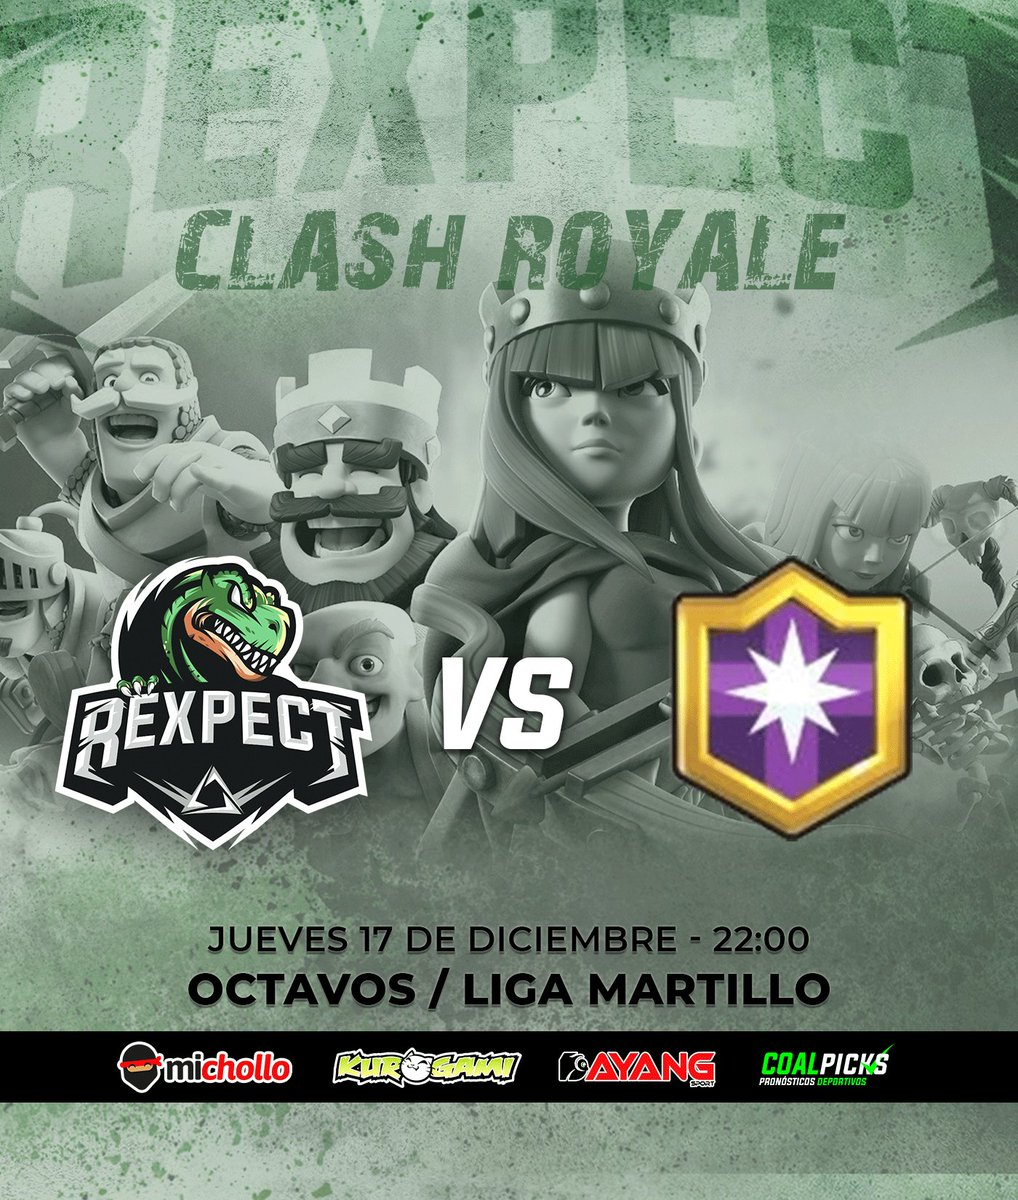 [ #ClashRoyale ]  ⭐️ Octavos de final 🏆 LIGA MARTILLO 🆚 @EsportsBoom  Mucha suerte chicos!!  #RoarWithUs 🦖 https://t.co/jmk536nVOZ